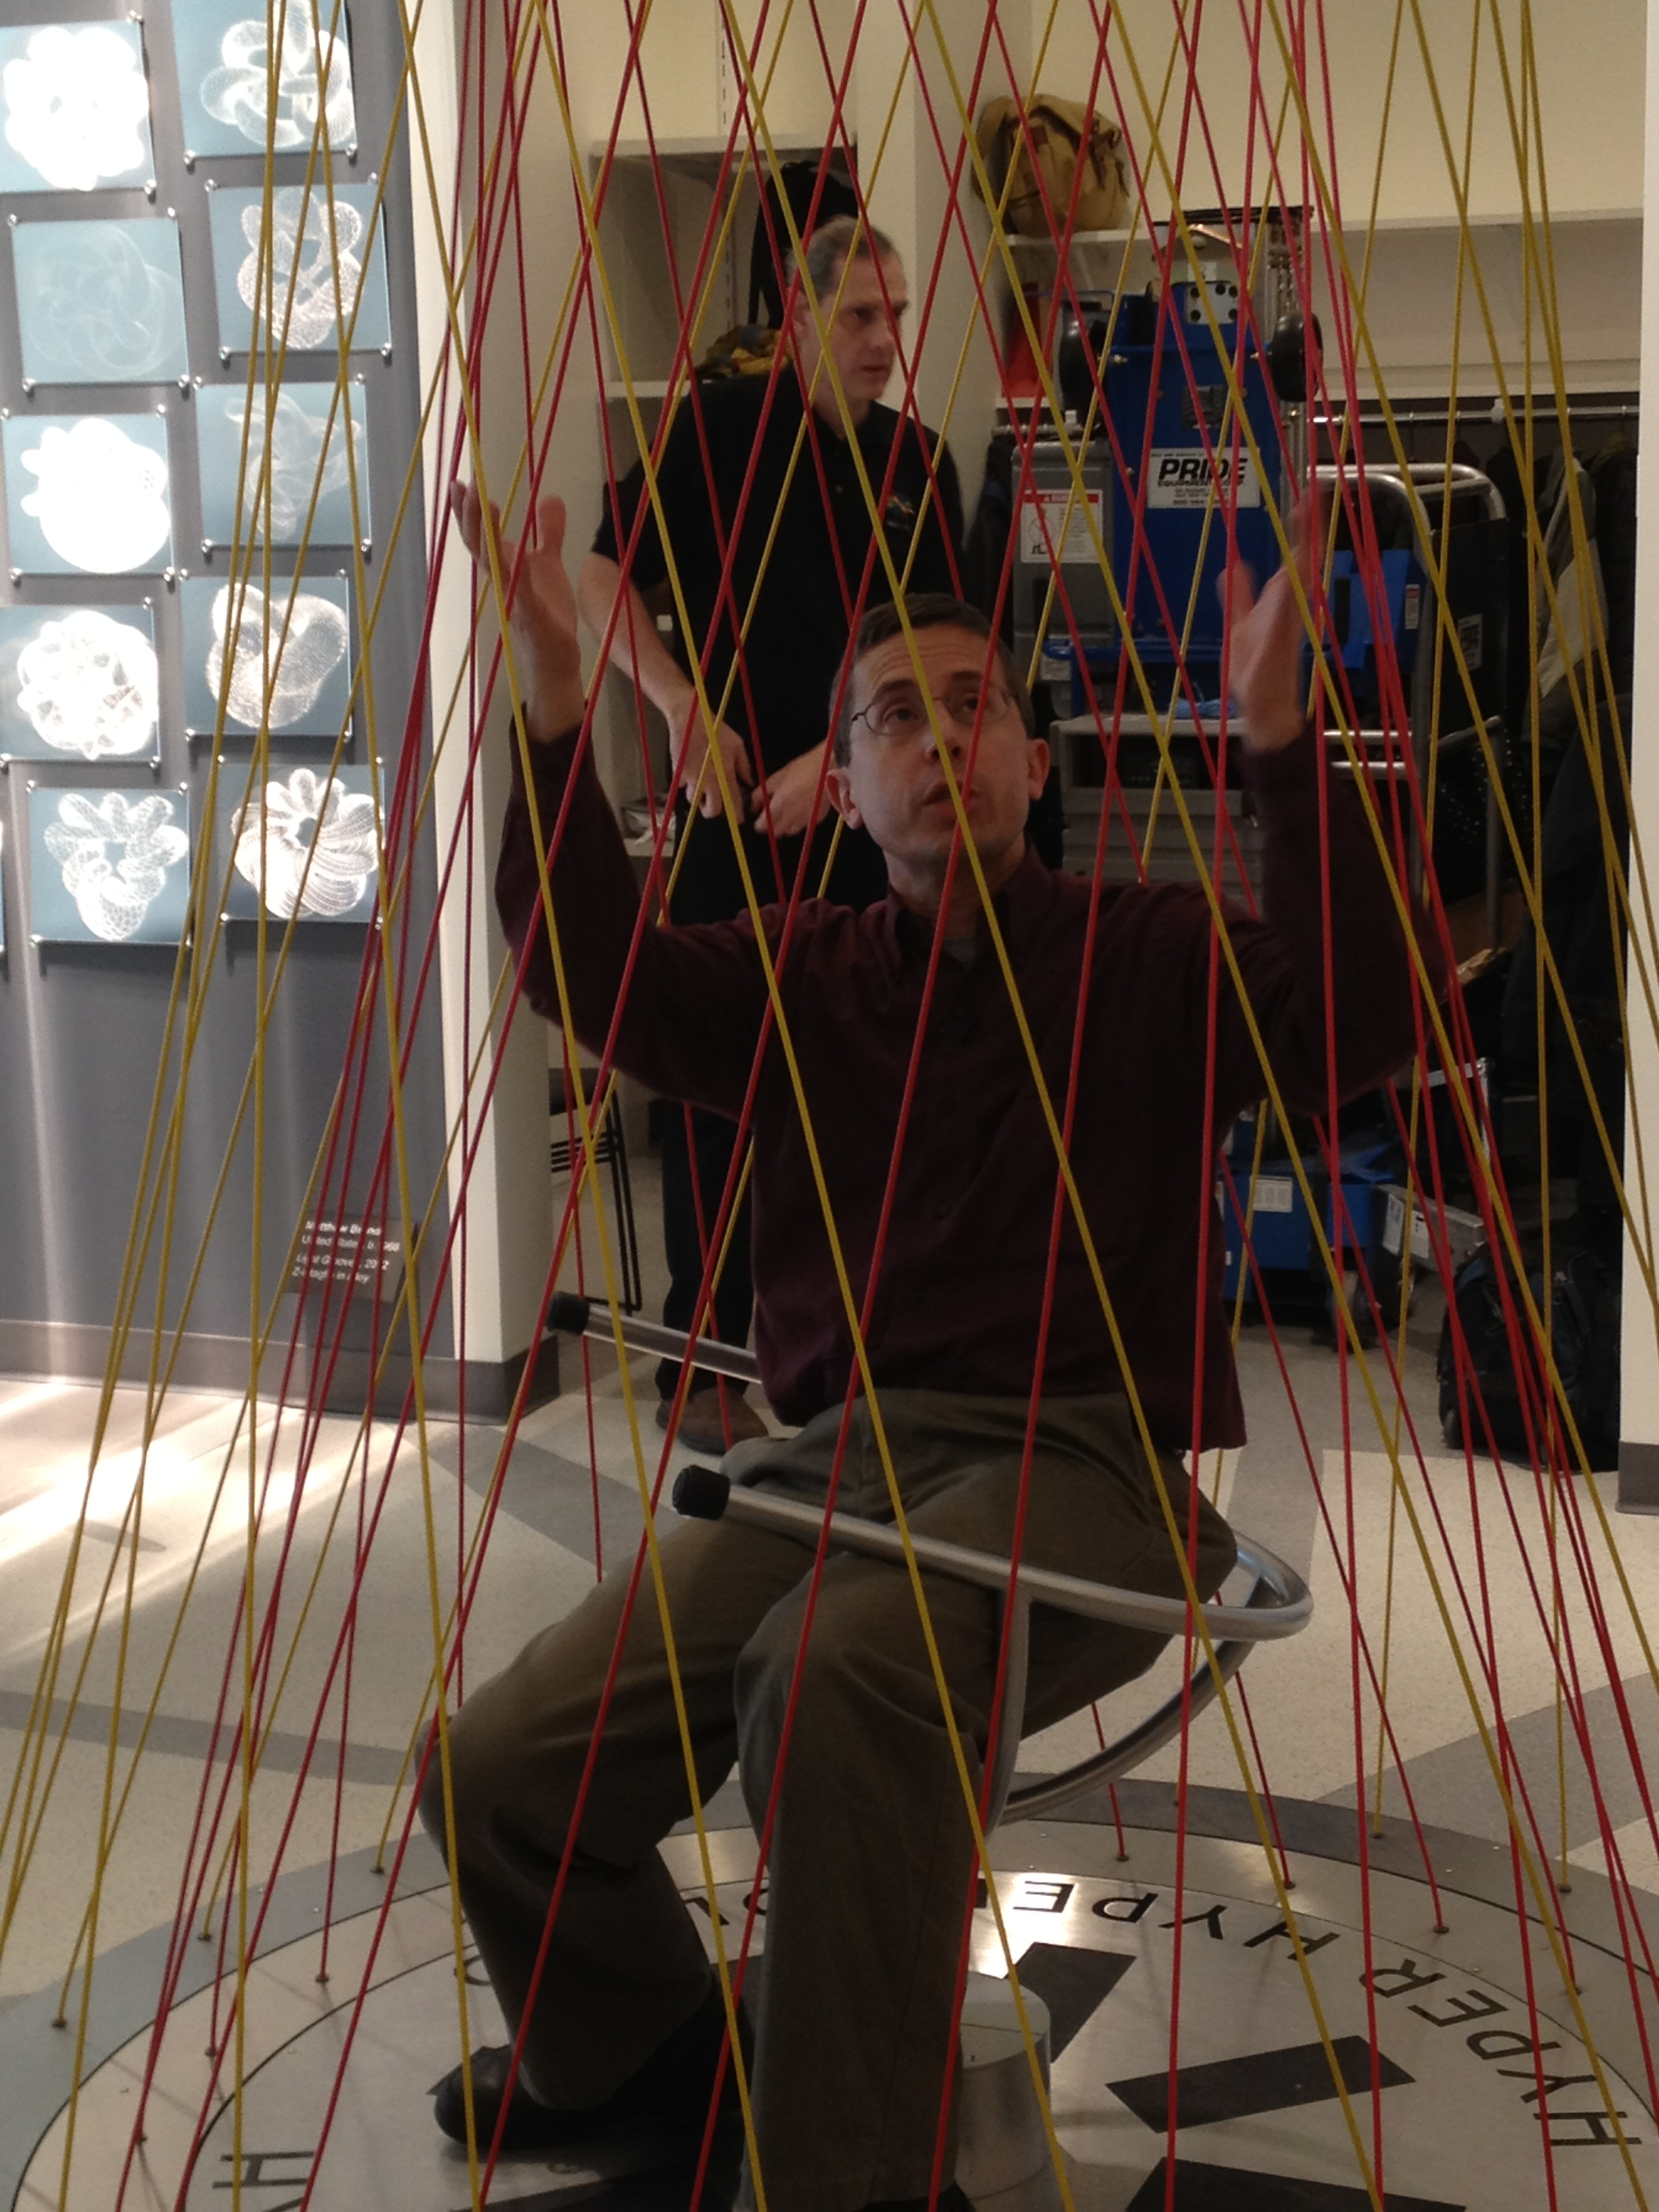 Executive director Glen Whitney demos the hyperboloid chair, which invites visitors to sit in the rotating chair and watch straight lines form a curved shape; think of a  cooling tower.